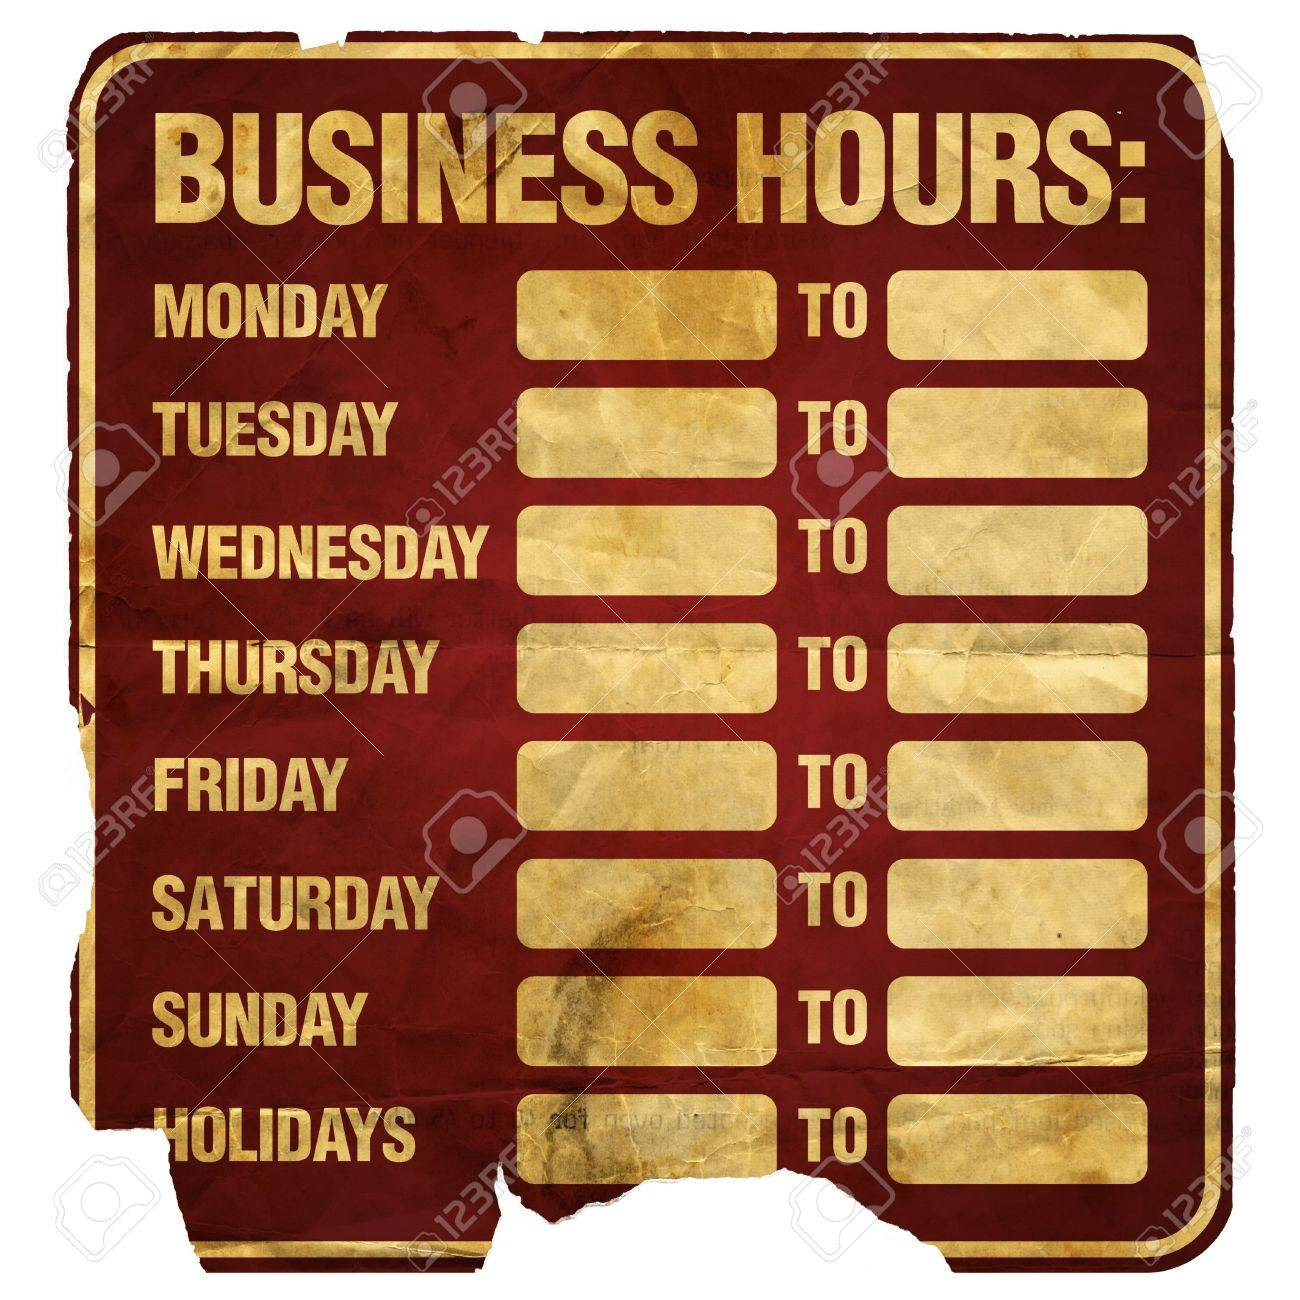 Business Hours Sign Degraded (blank). Stock Photo, Picture And ...